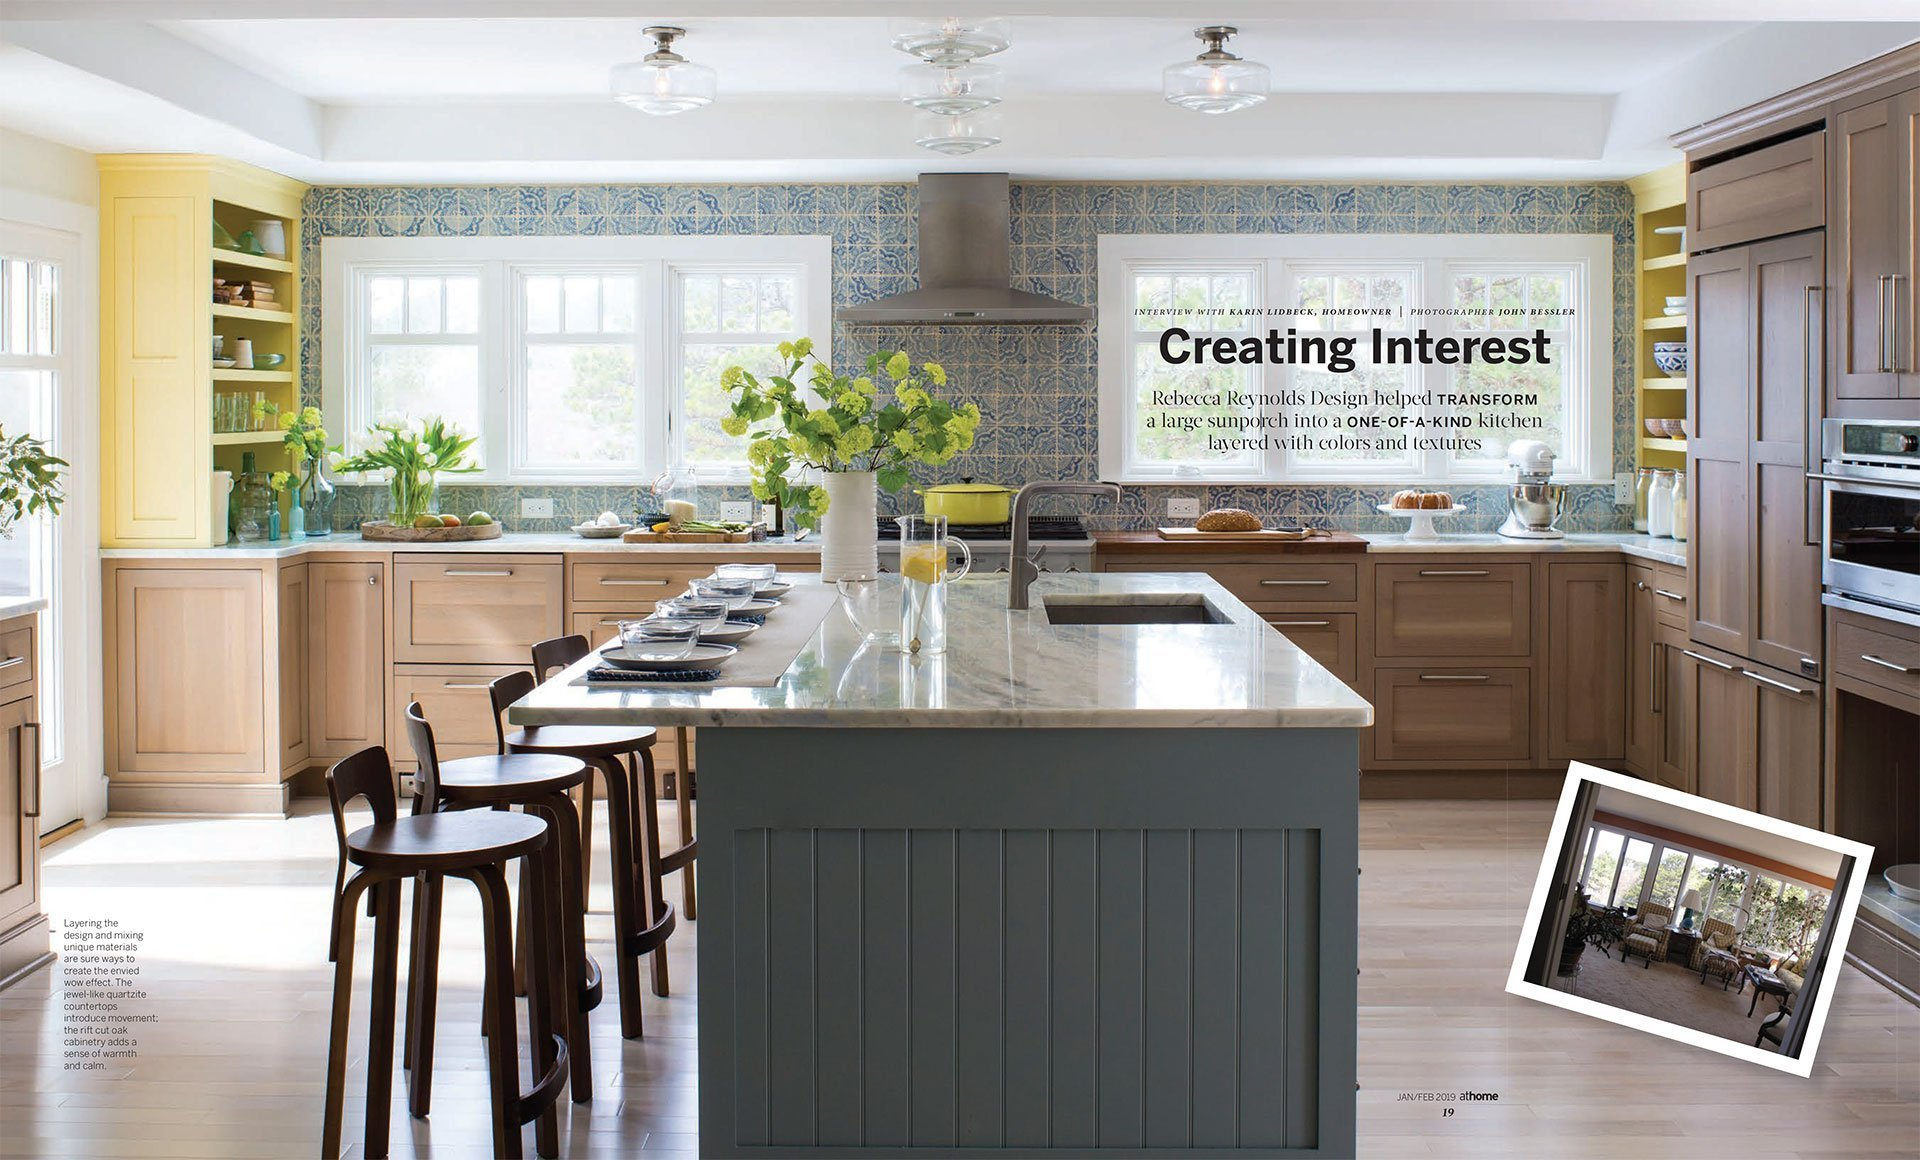 Renovate atHOME Edition: Creating Interest